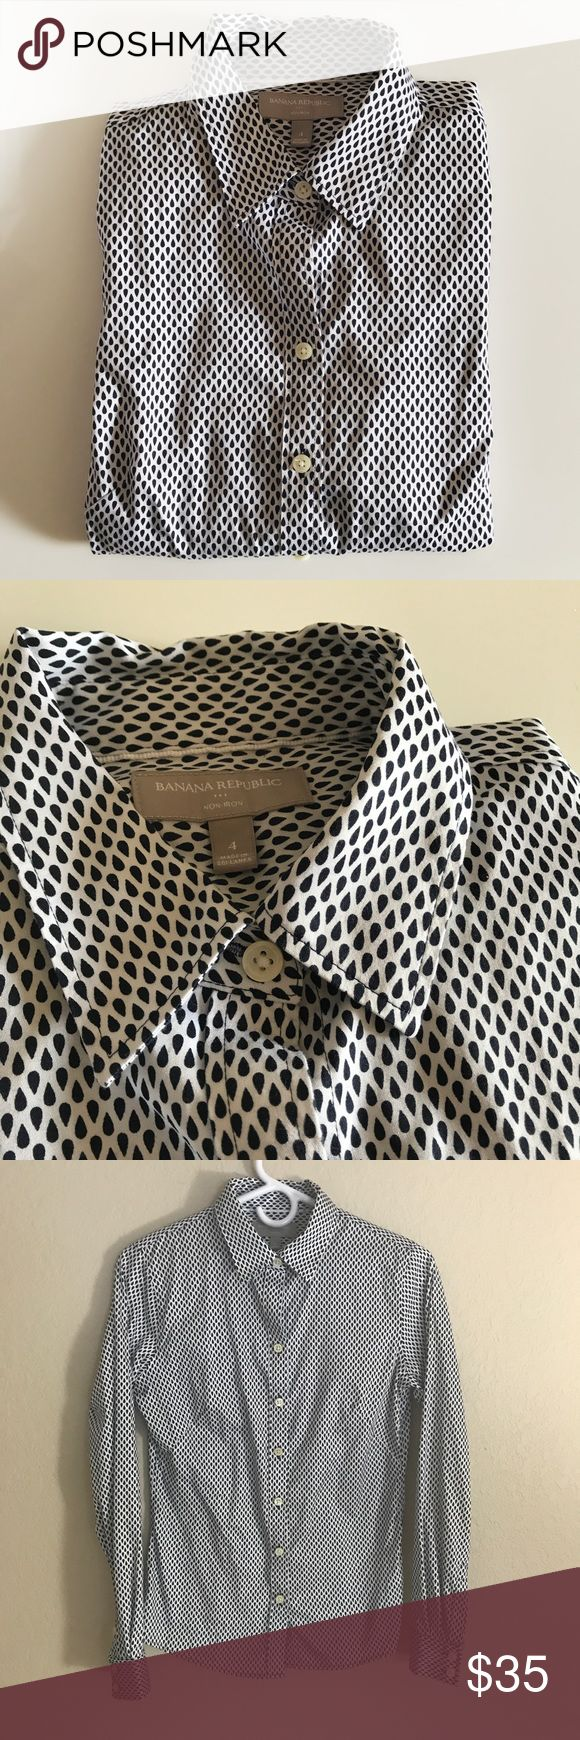 BR women's shirts Button down shirts / non iron shirts / size : 4 / navy & white color / in excellent condition (new without tag) Banana Republic Tops Button Down Shirts